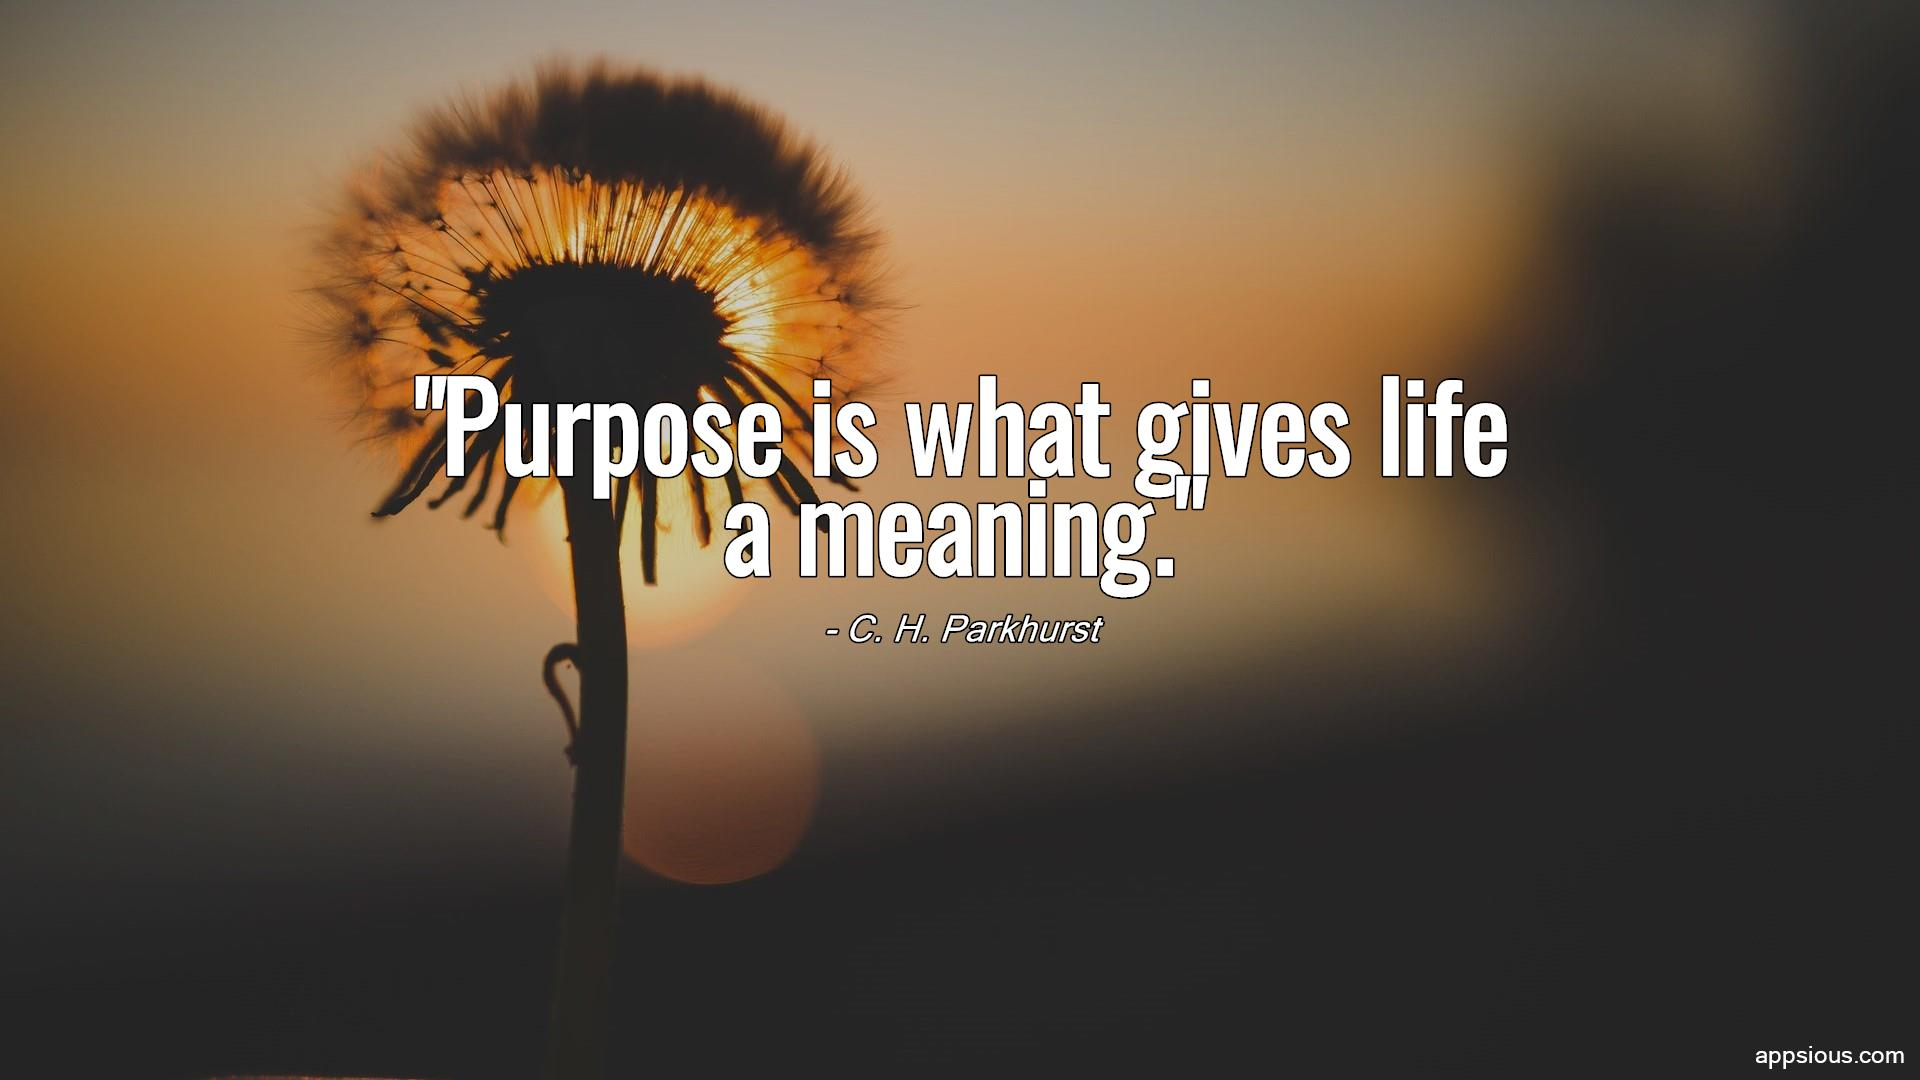 Purpose is what gives life a meaning.